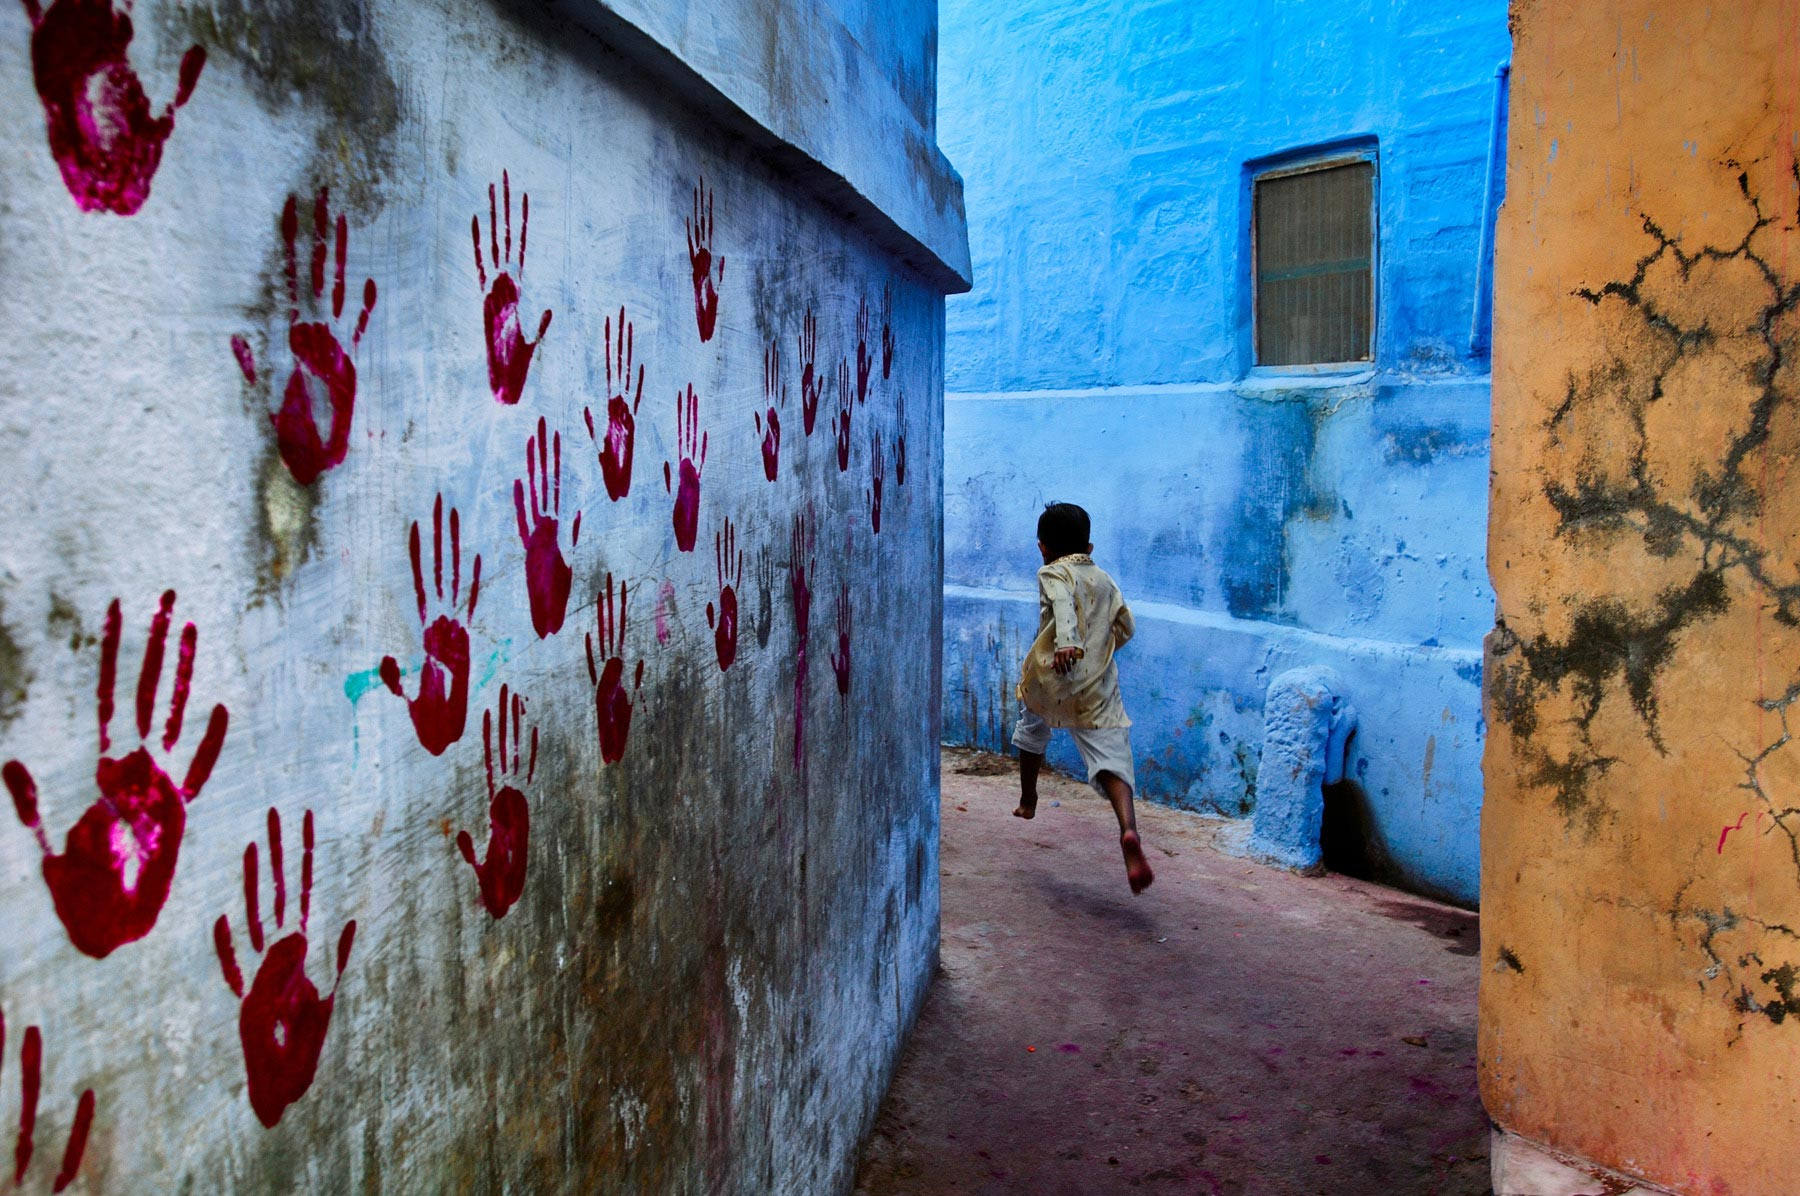 Steve-McCurry-India-Photography-15